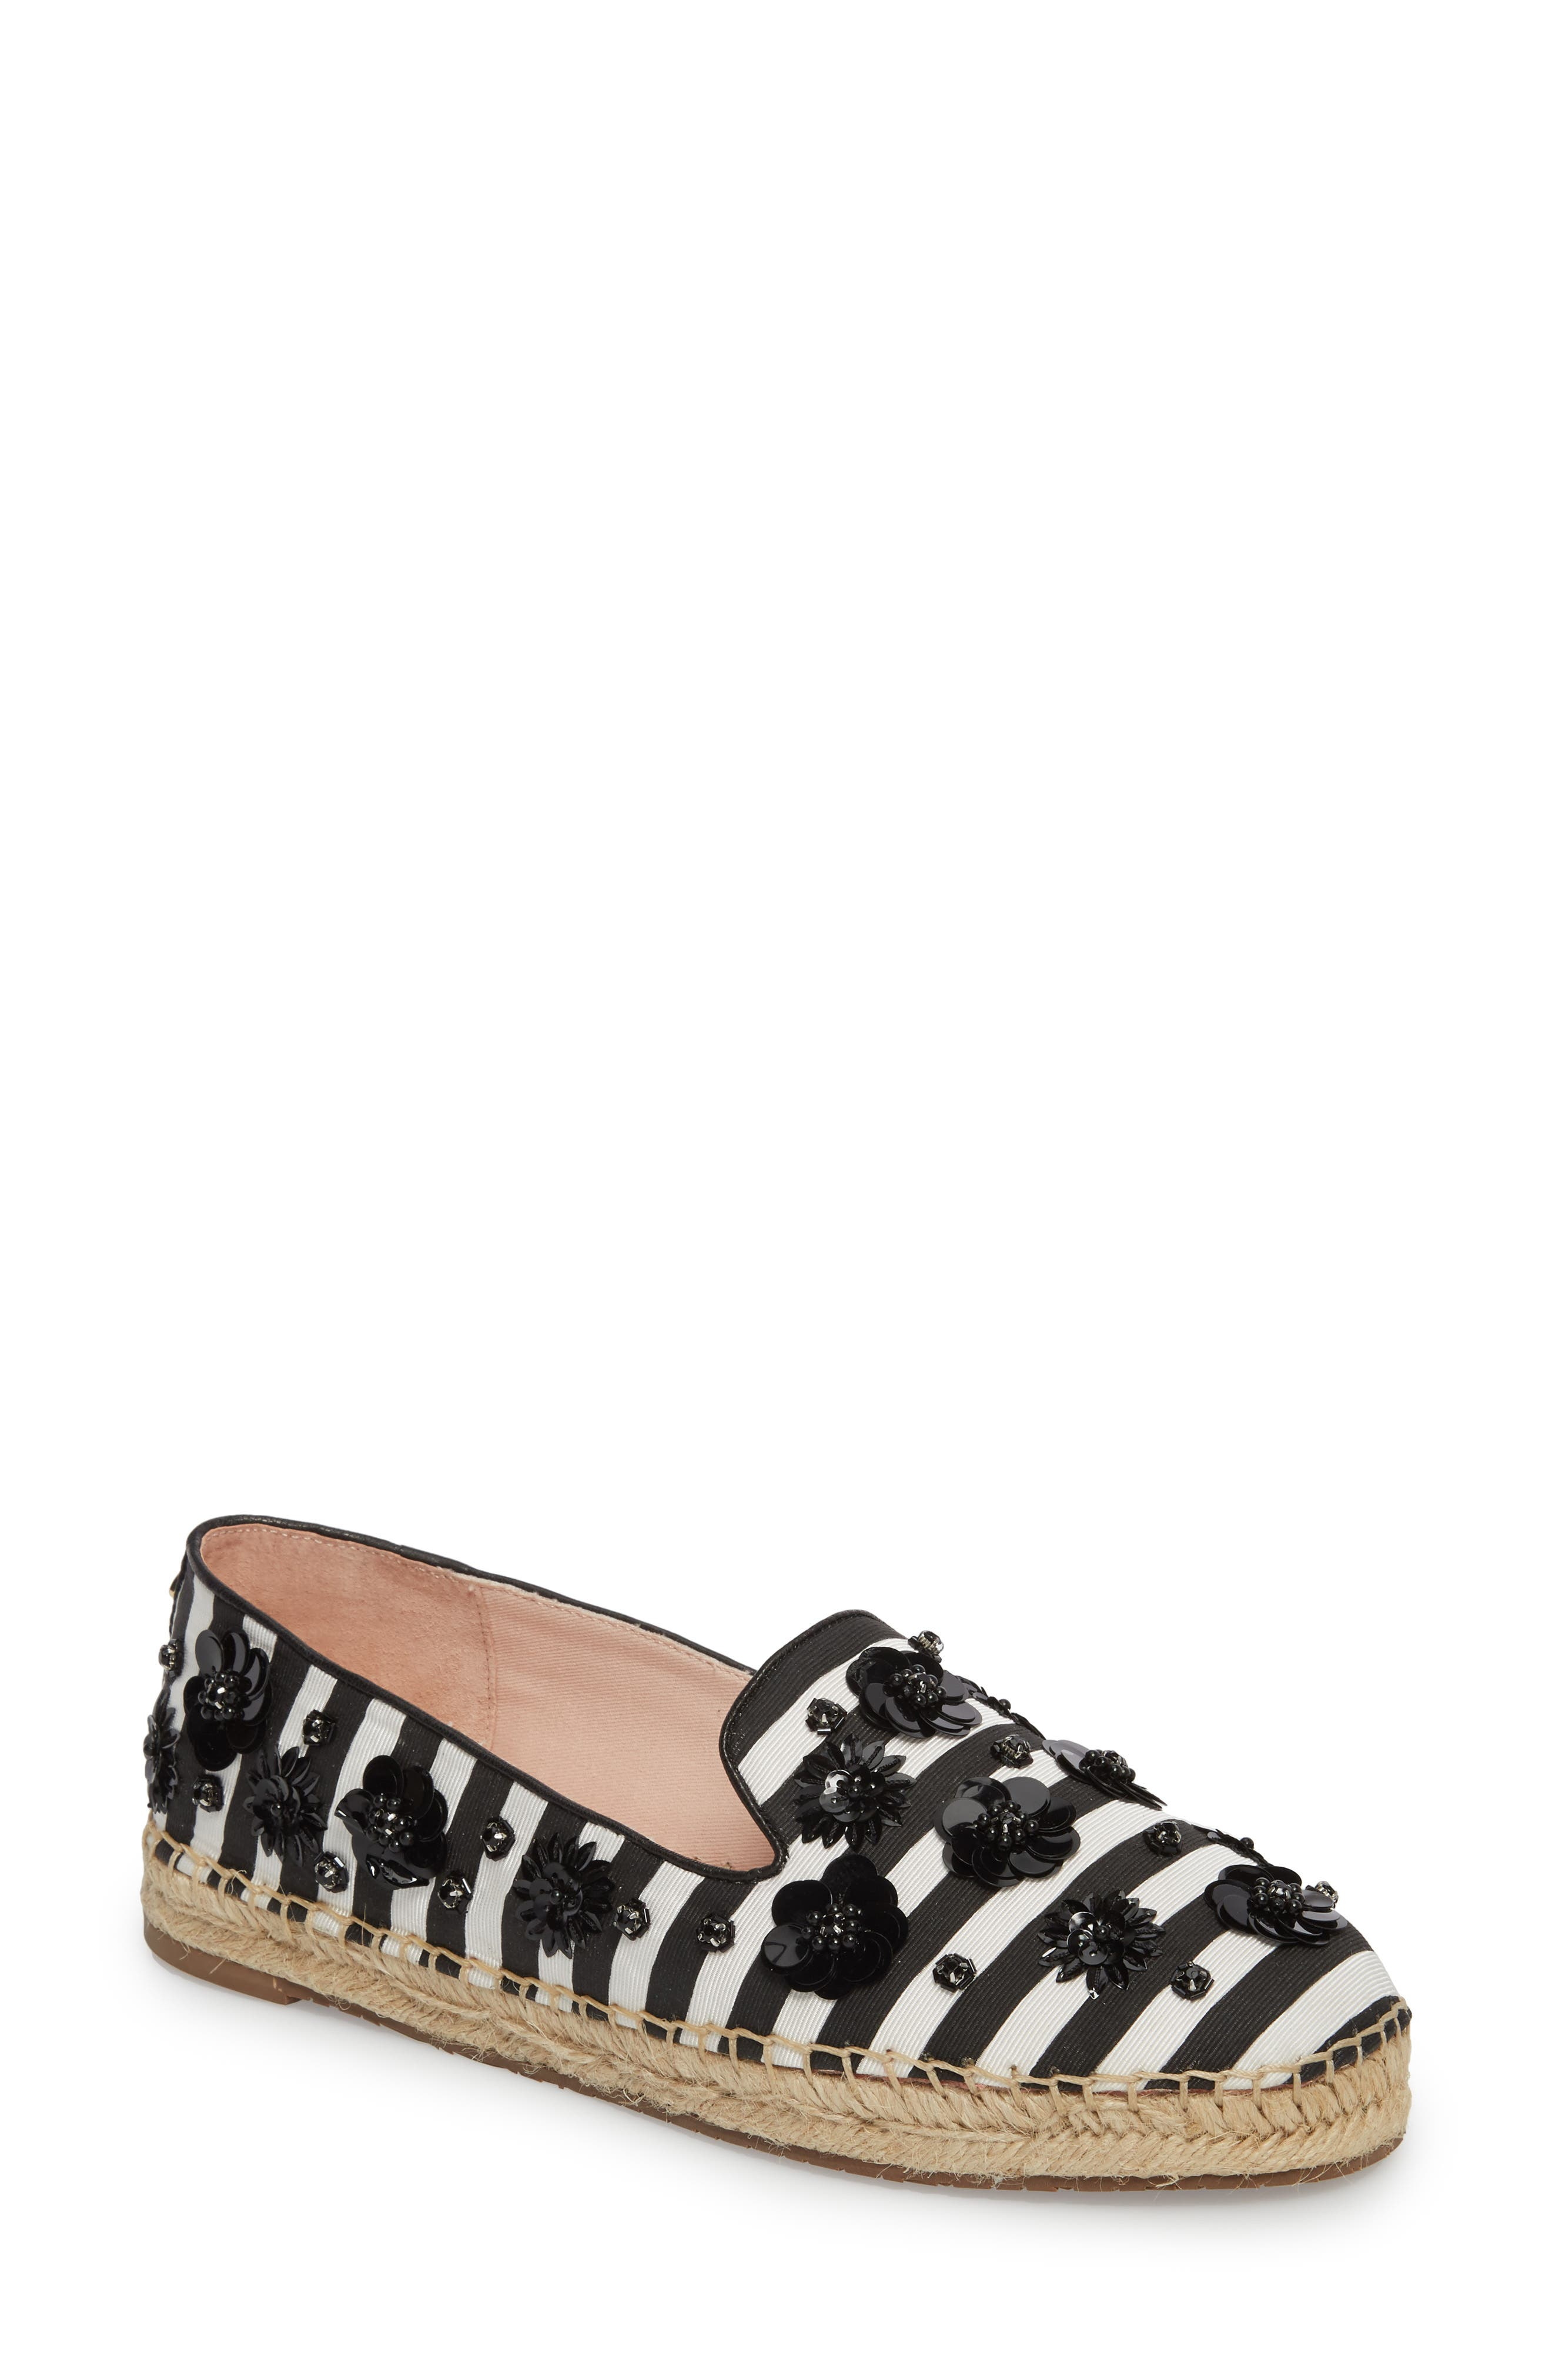 leigh embellished espadrille flat,                         Main,                         color, Black/ White Striped